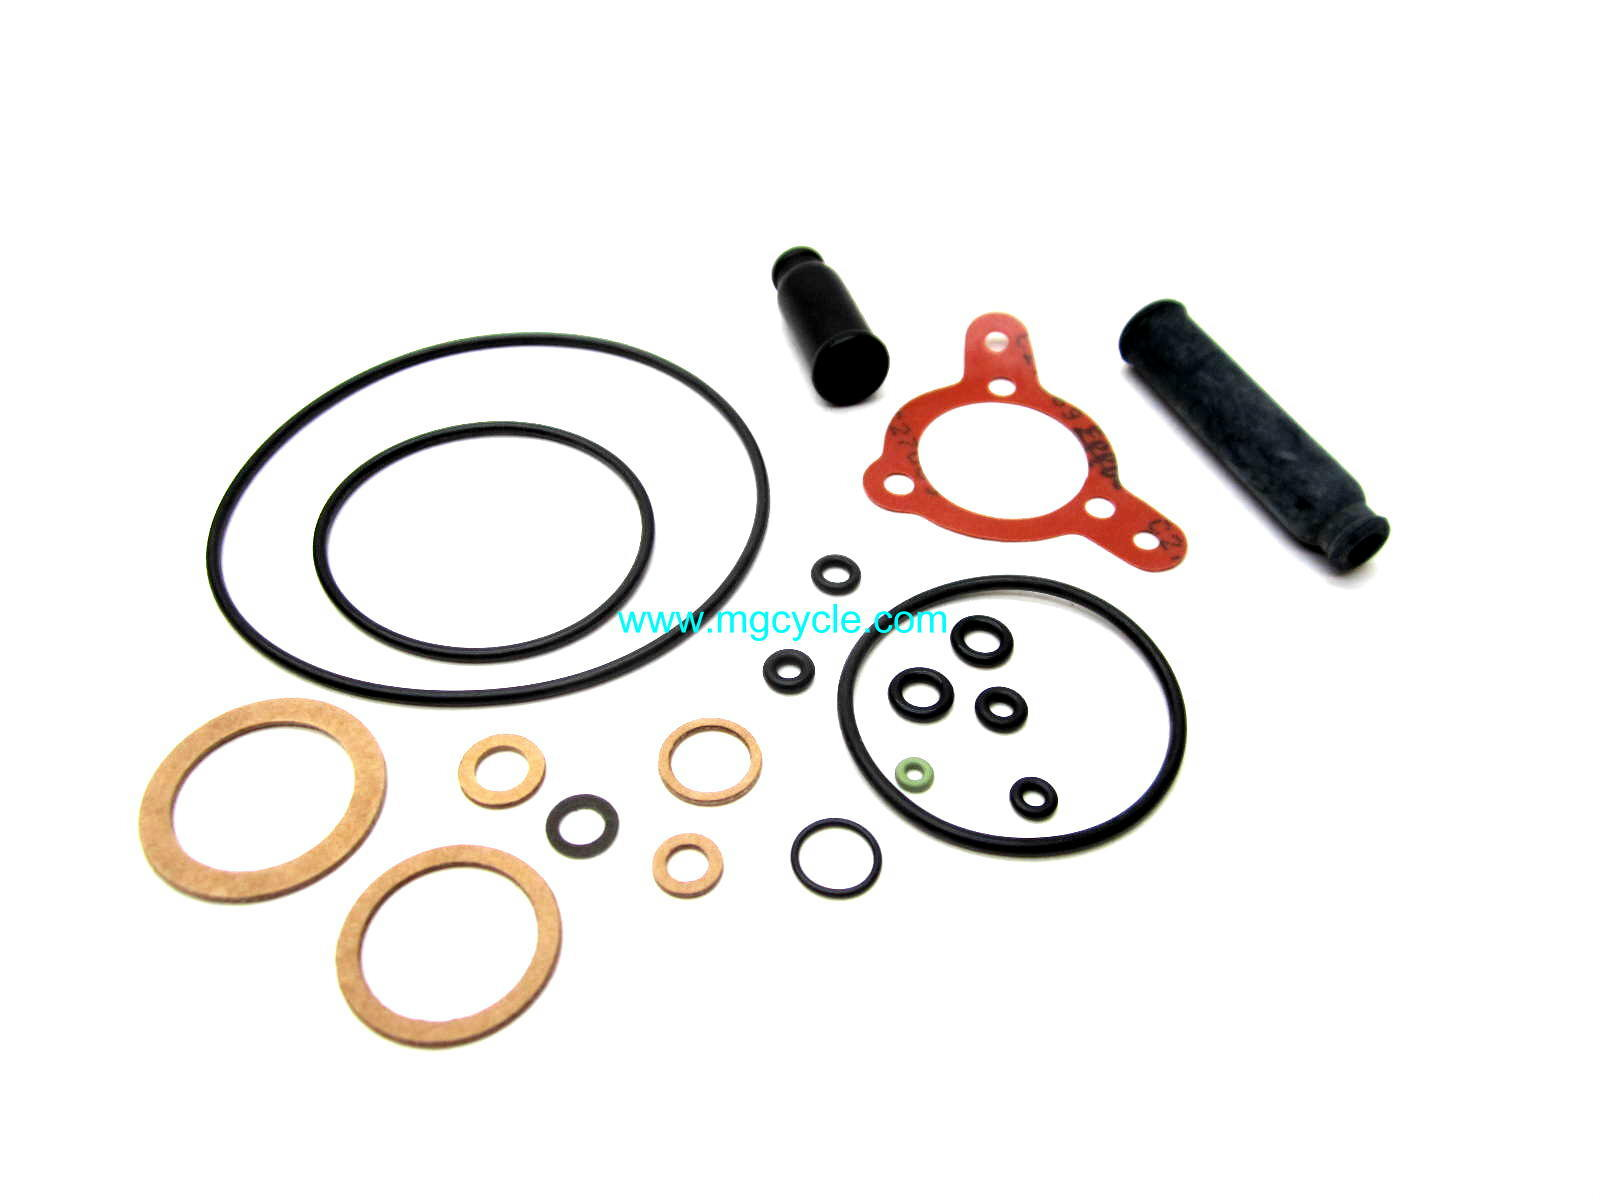 Dellorto 52547 carb kit PHF 30/32/34/36 without bellcranks